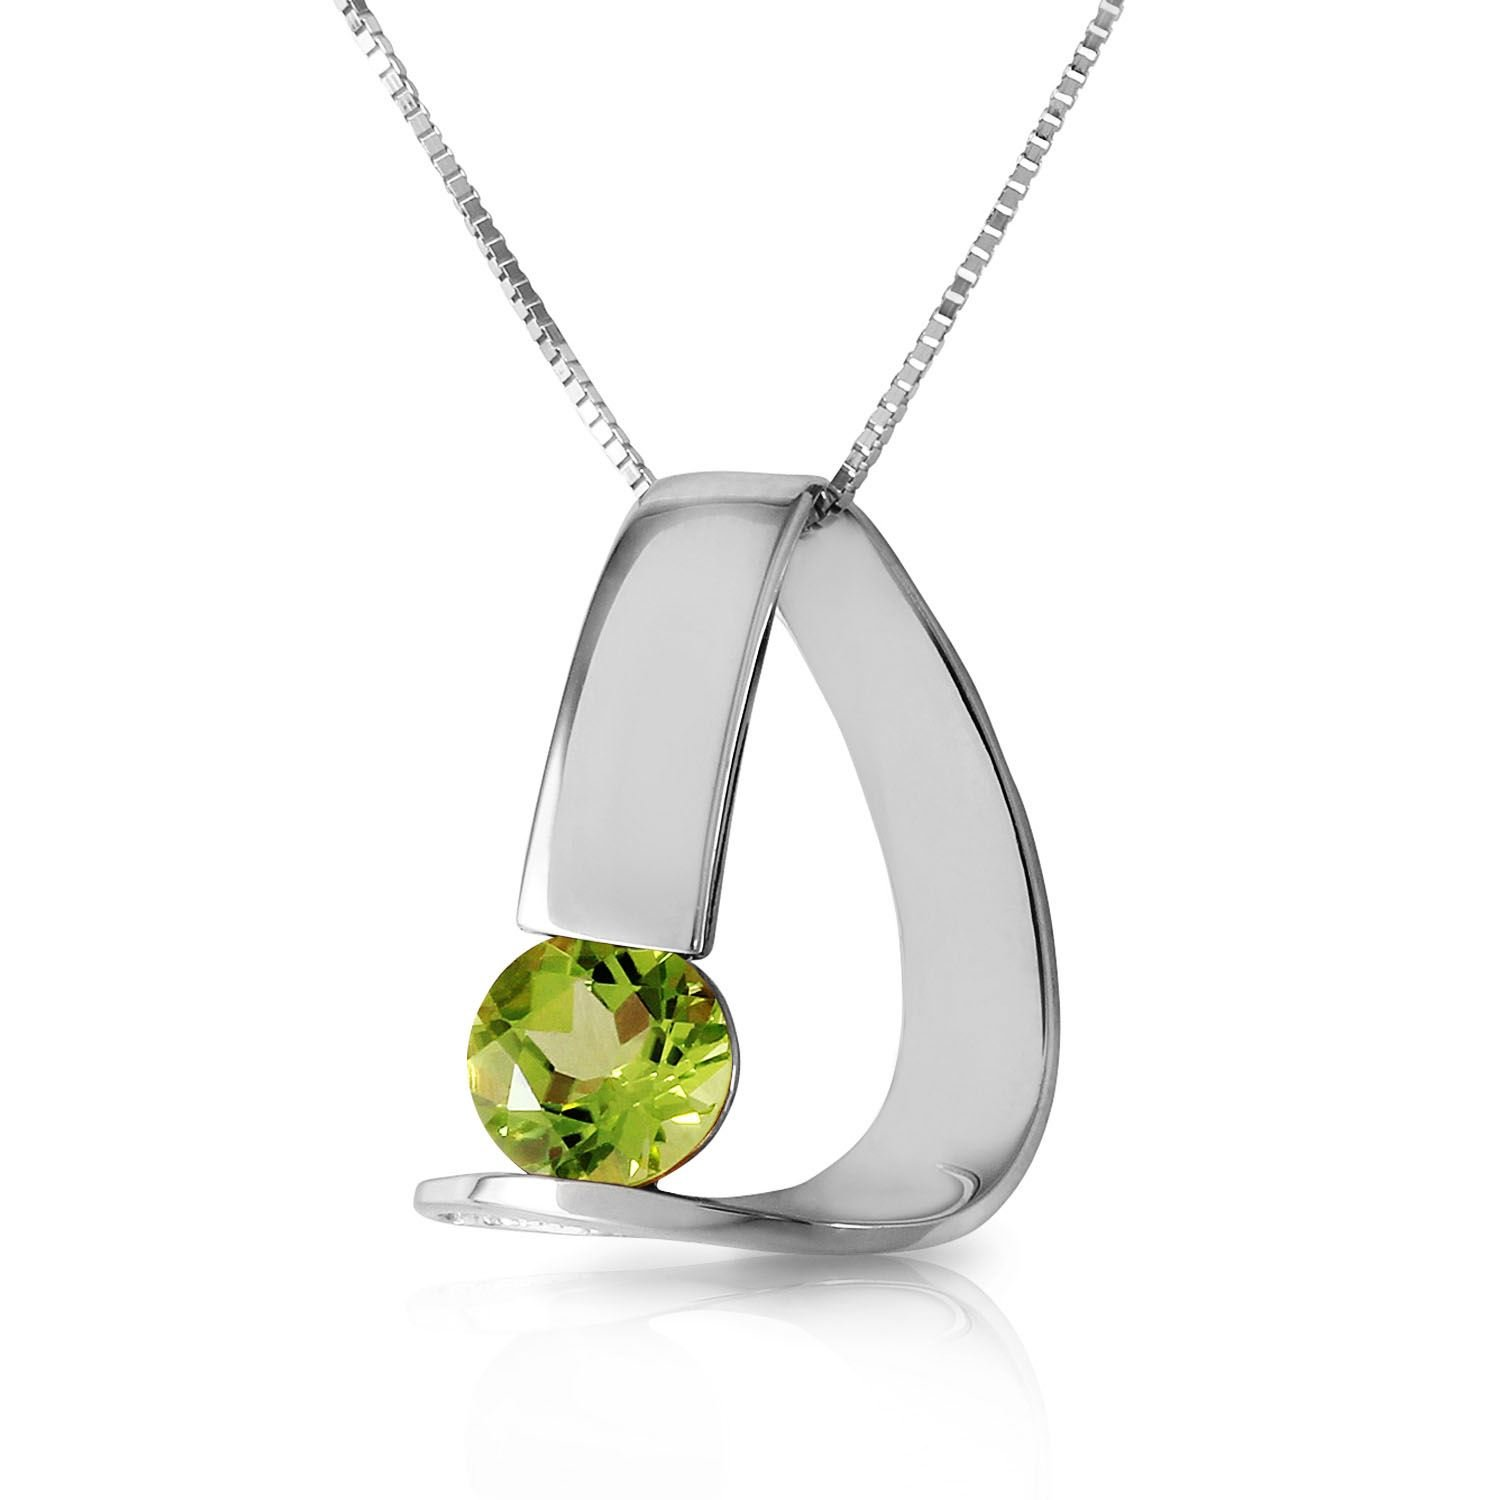 ALARRI 14K Solid White Gold Modern Necklace w/ Natural Peridot with 18 Inch Chain Length